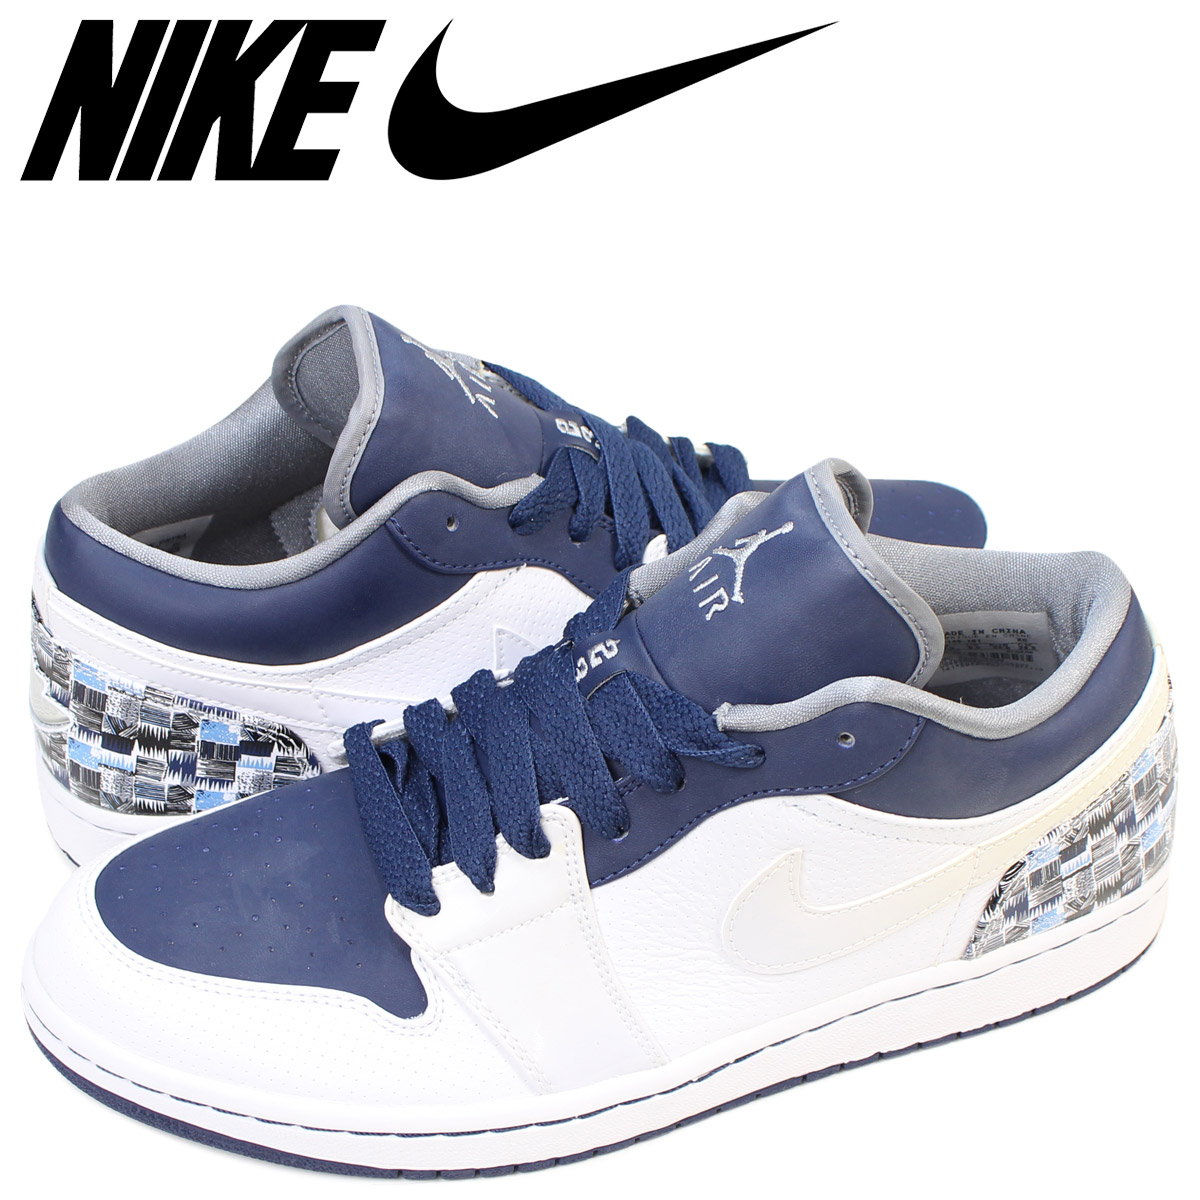 be3401f20f22e ALLSPORTS  NIKE Nike Air Jordan 1 low sneakers AIR JORDAN 1 PHAT LOW ...